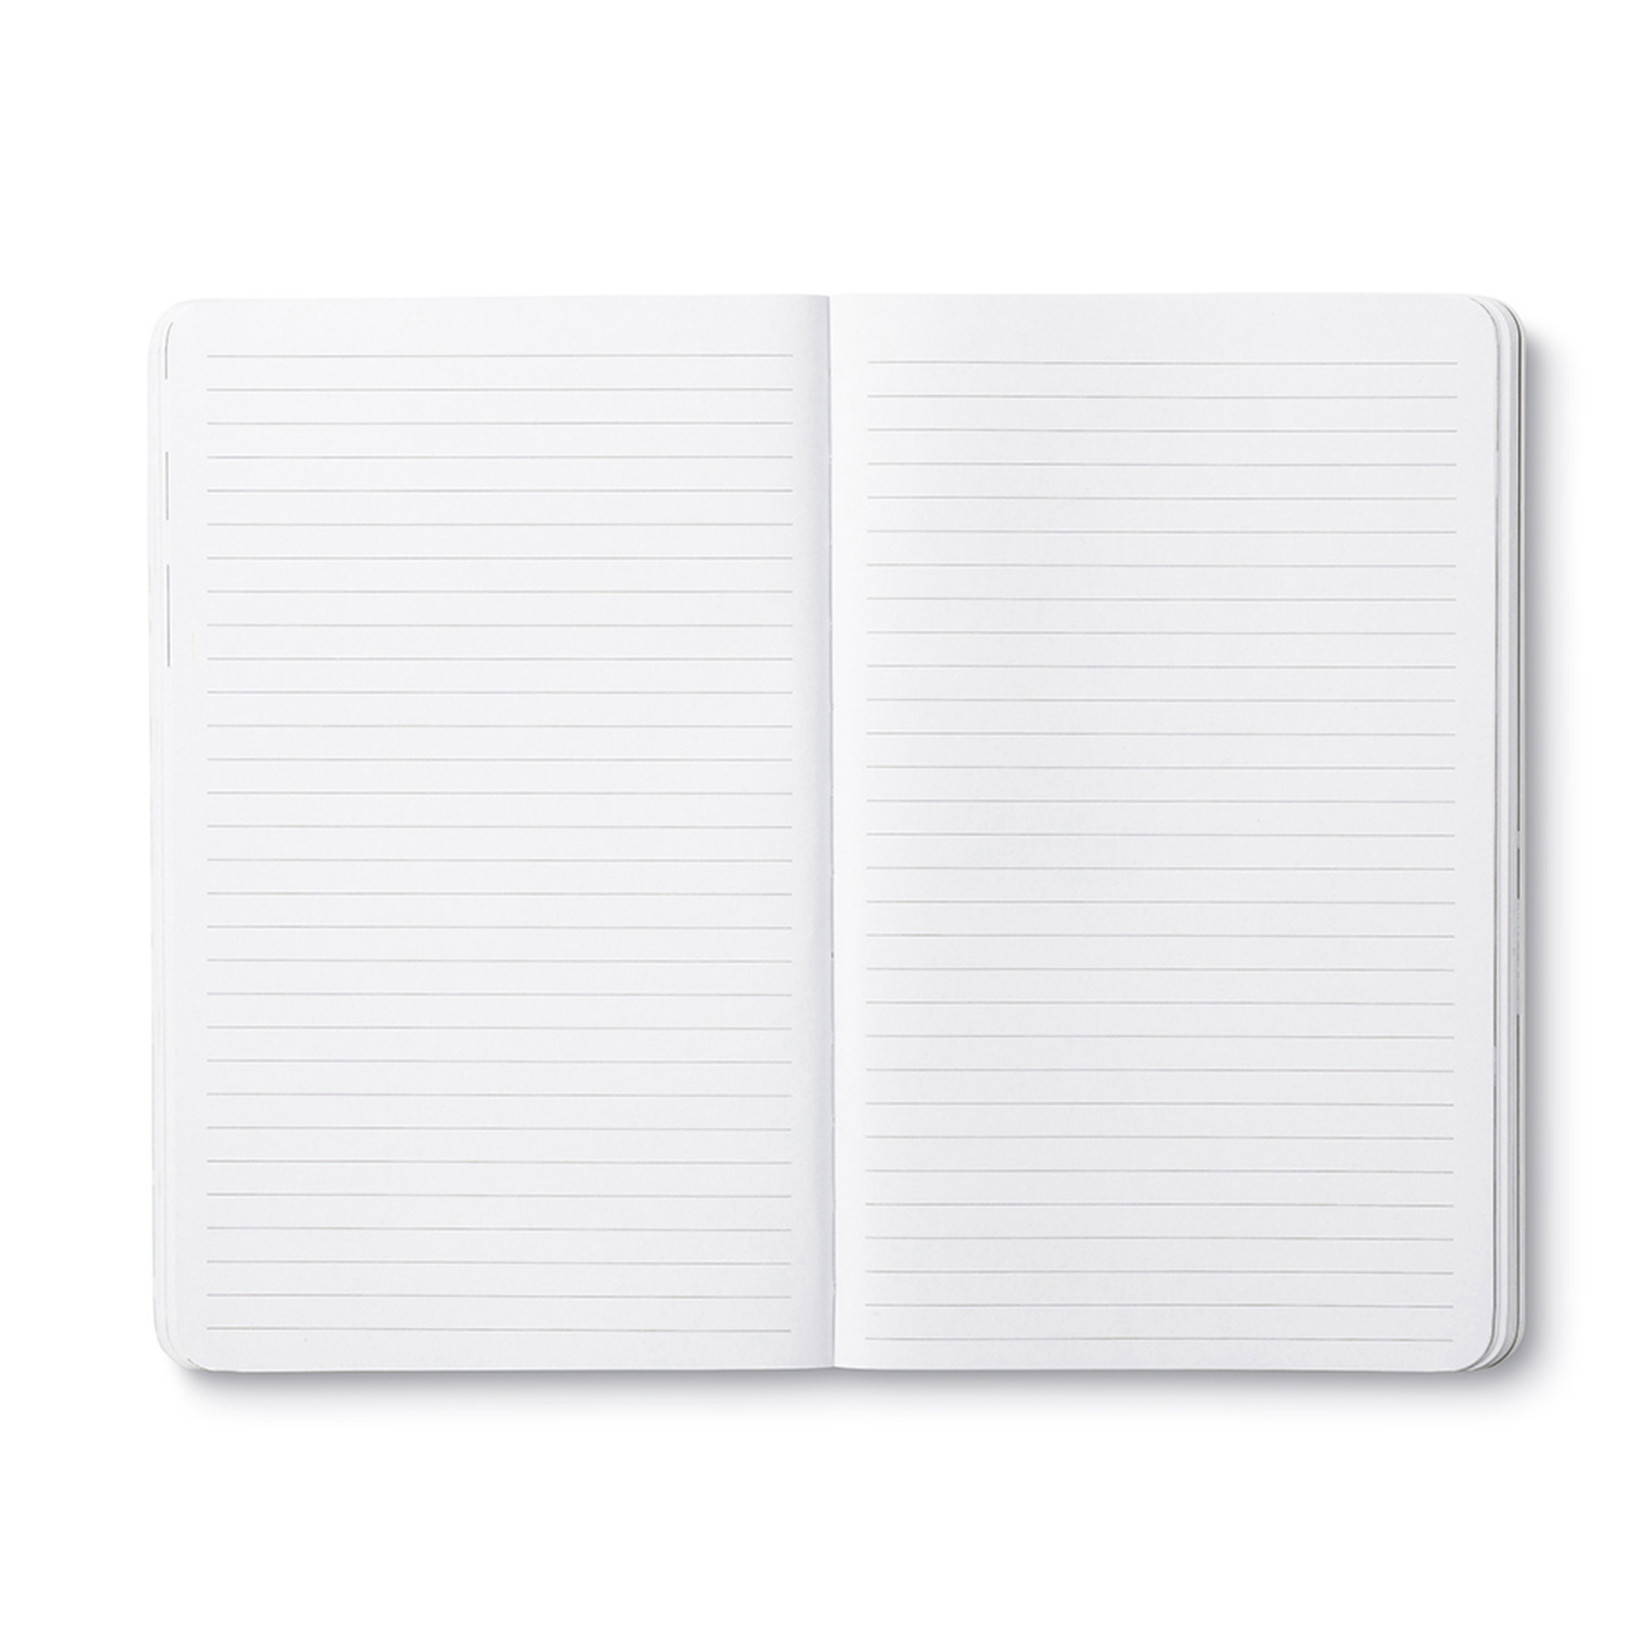 COMPENDIUM WRITE NOW JOURNAL - DREAM BIG AND DARE TO FAIL